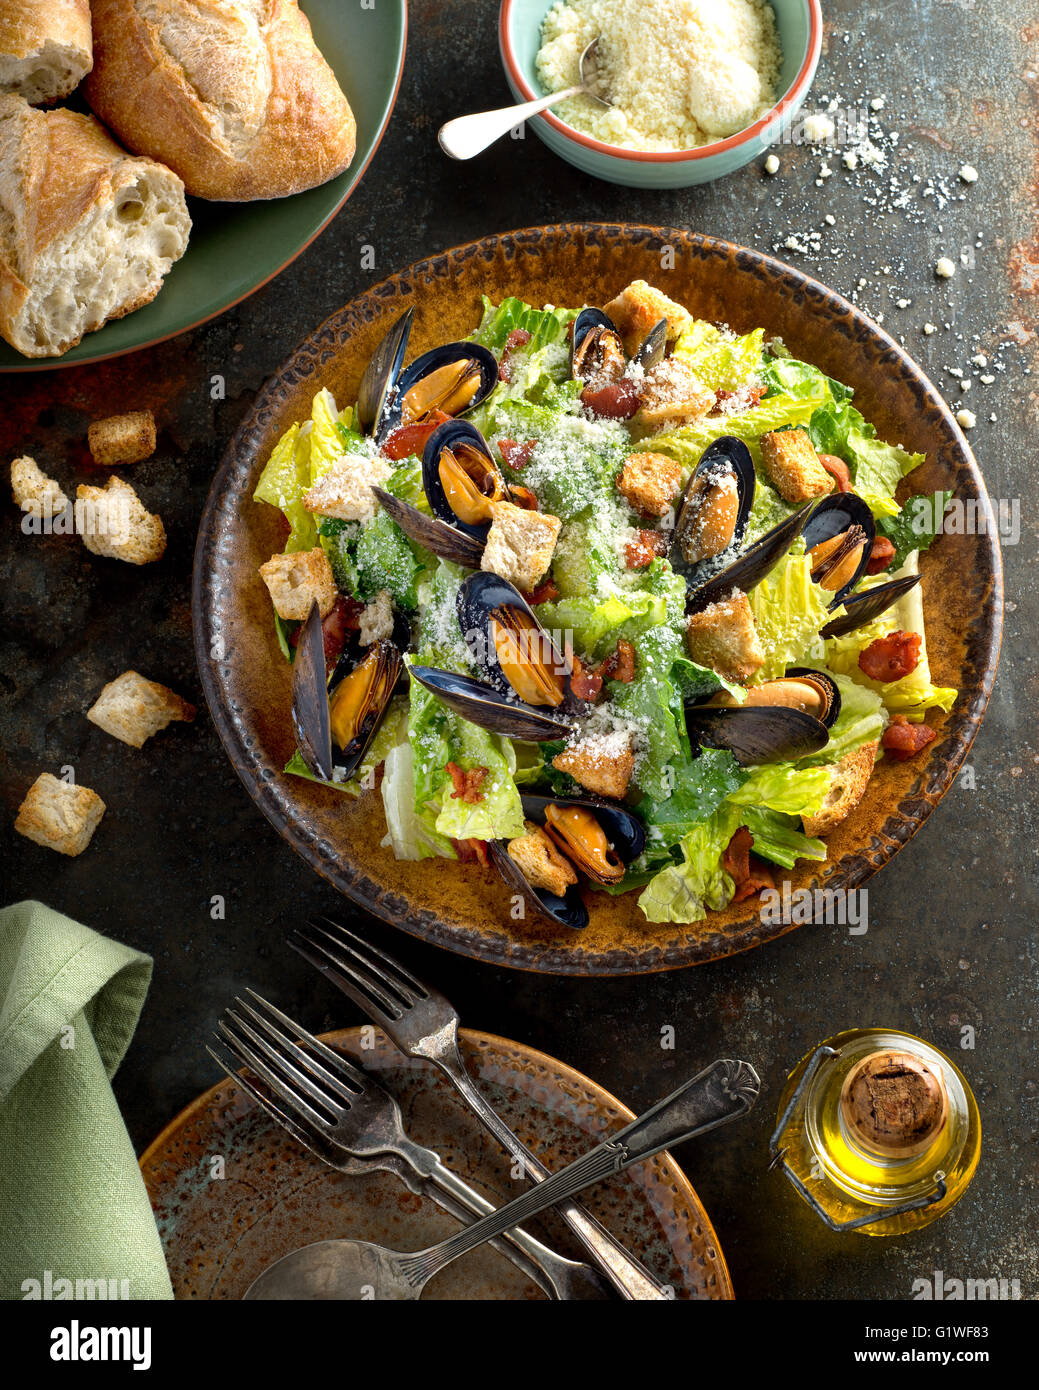 A delicious caesar salad with mussels, romaine lettuce, bacon, croutons, and parmesan cheese. - Stock Image